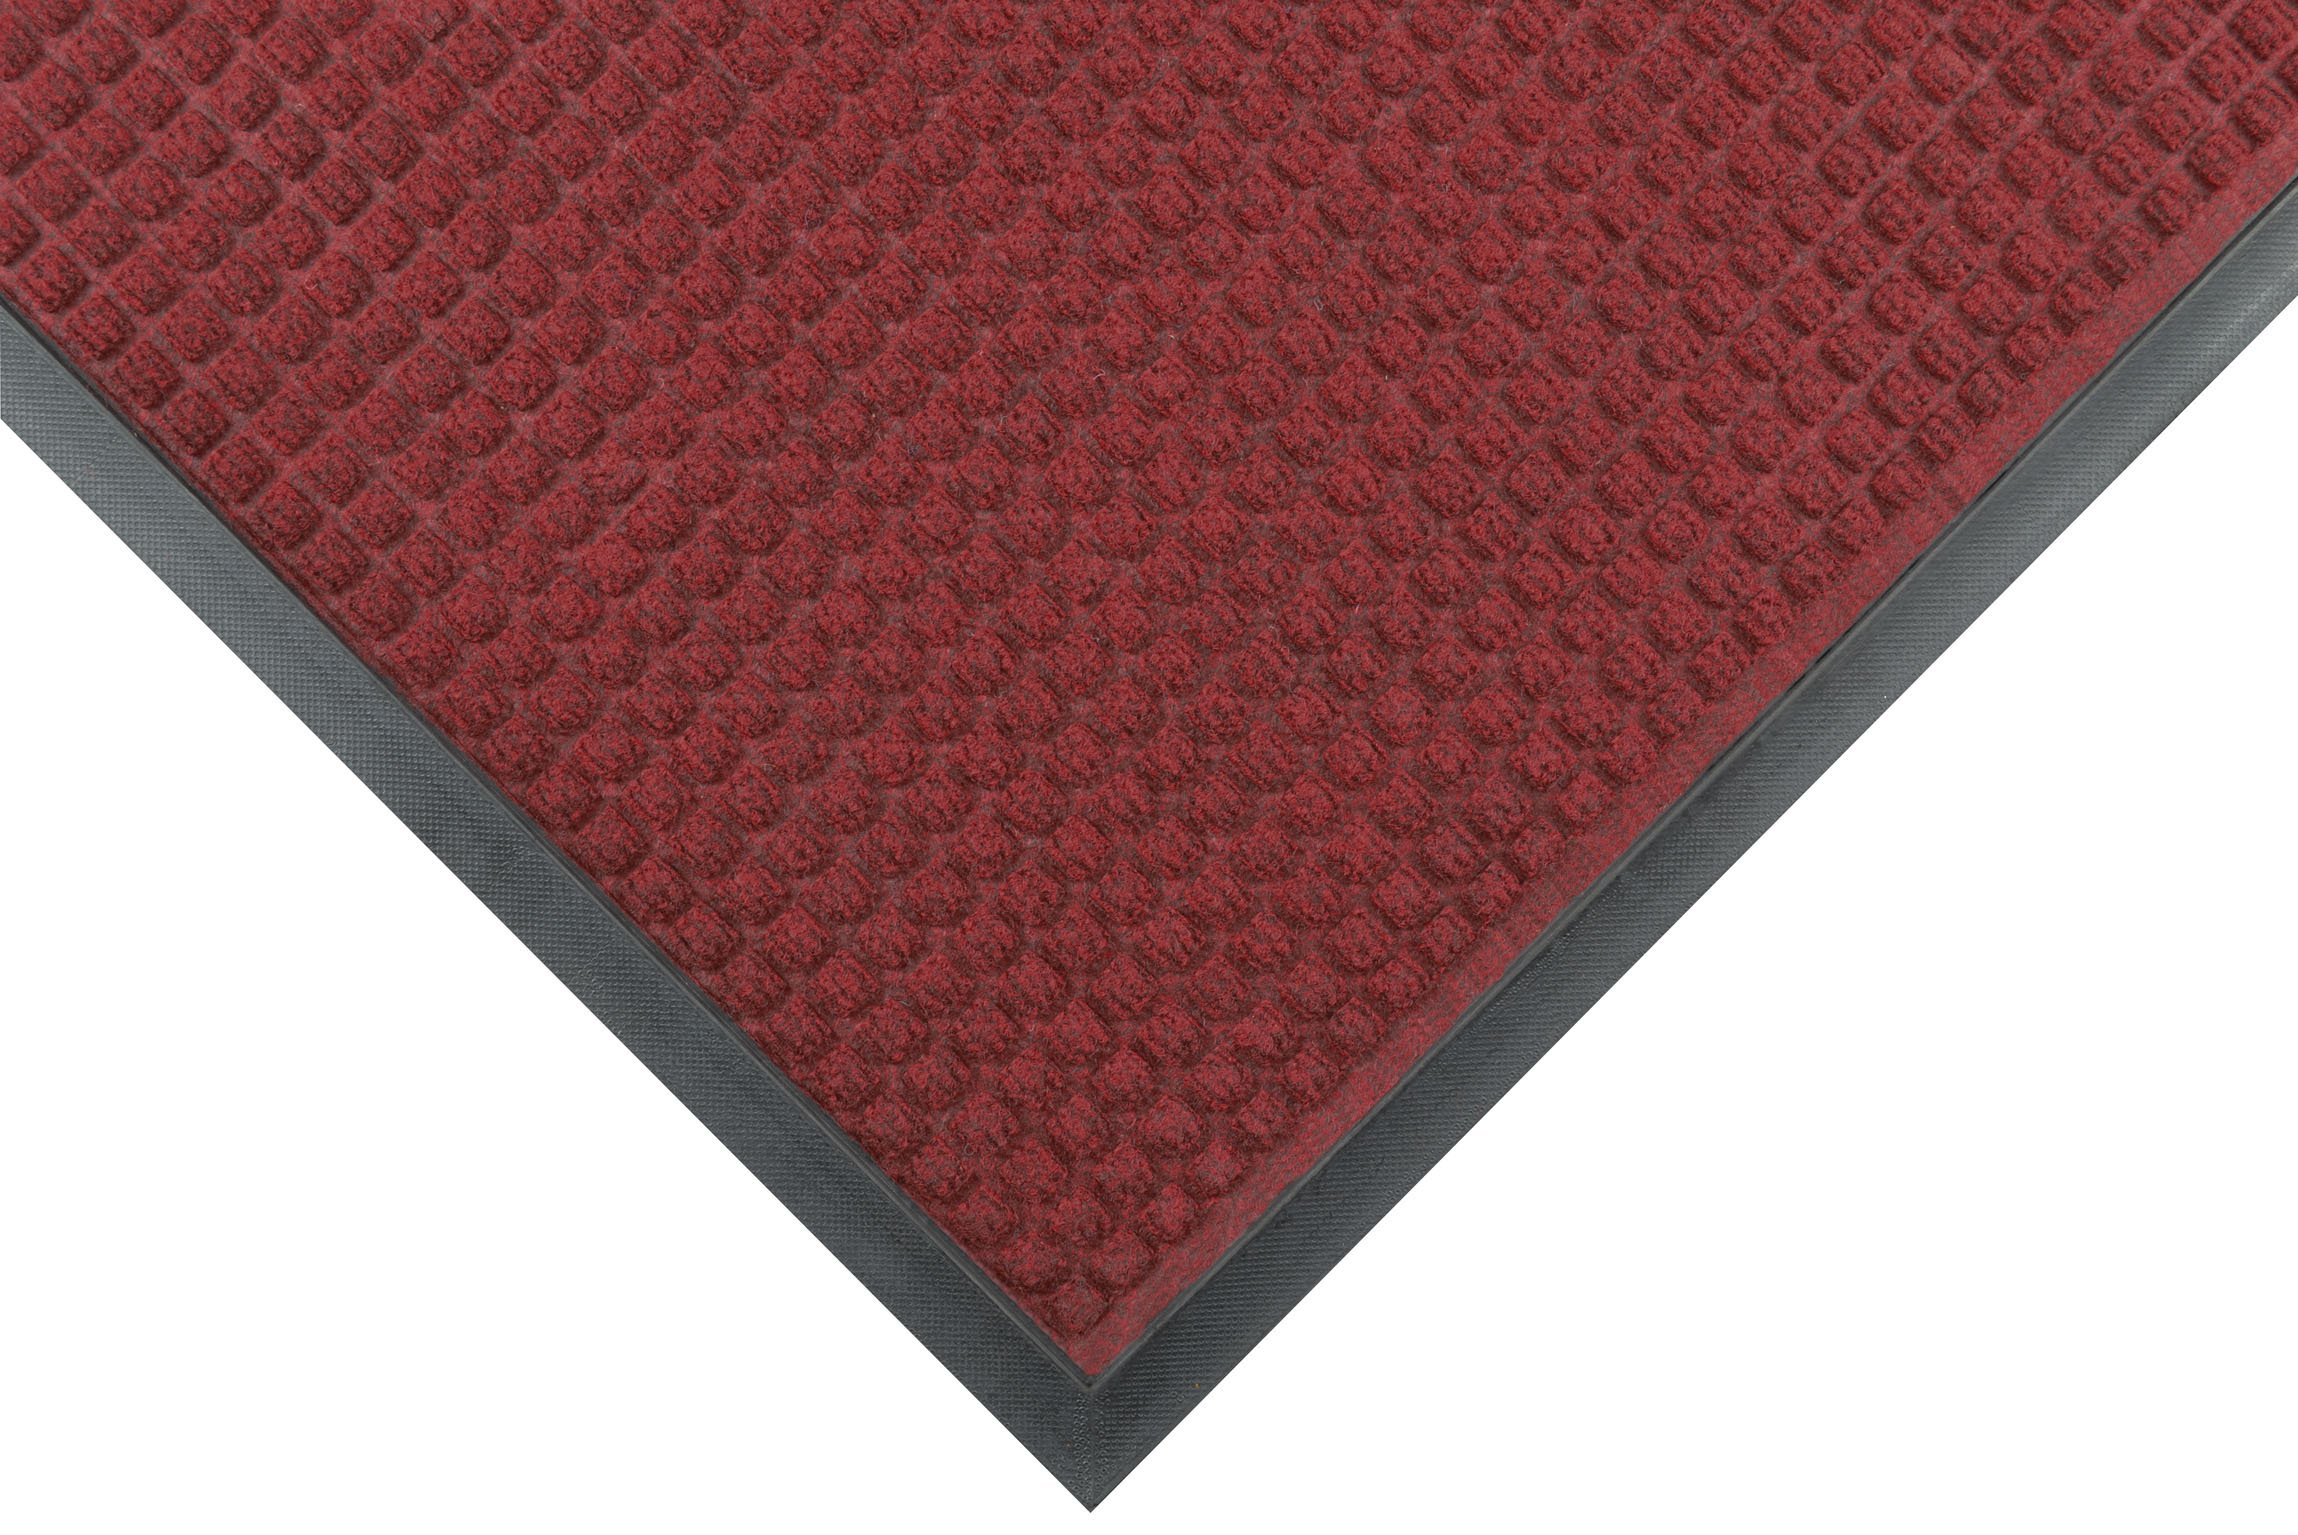 Notrax 166 Guzzler Entrance Mat, for Lobbies and Entranceways, 4' Width x 6' Length x 1/4'' Thickness, Red/Black